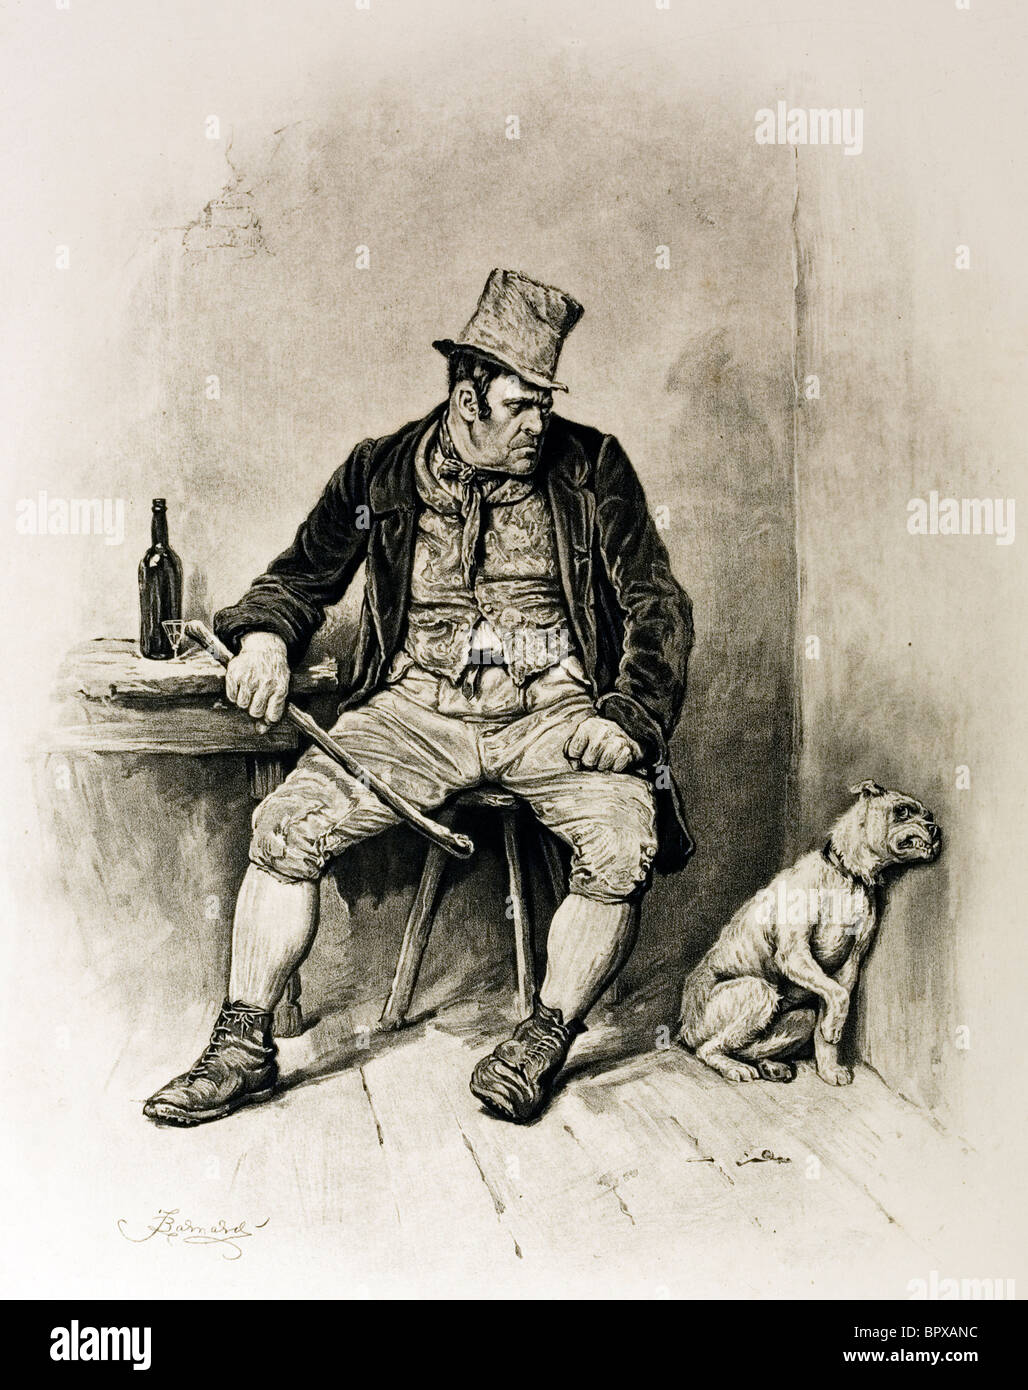 Character sketch of Bill Sykes from Oliver Twist by Charles Dickens. Artist Frederick Barnard.. - Stock Image